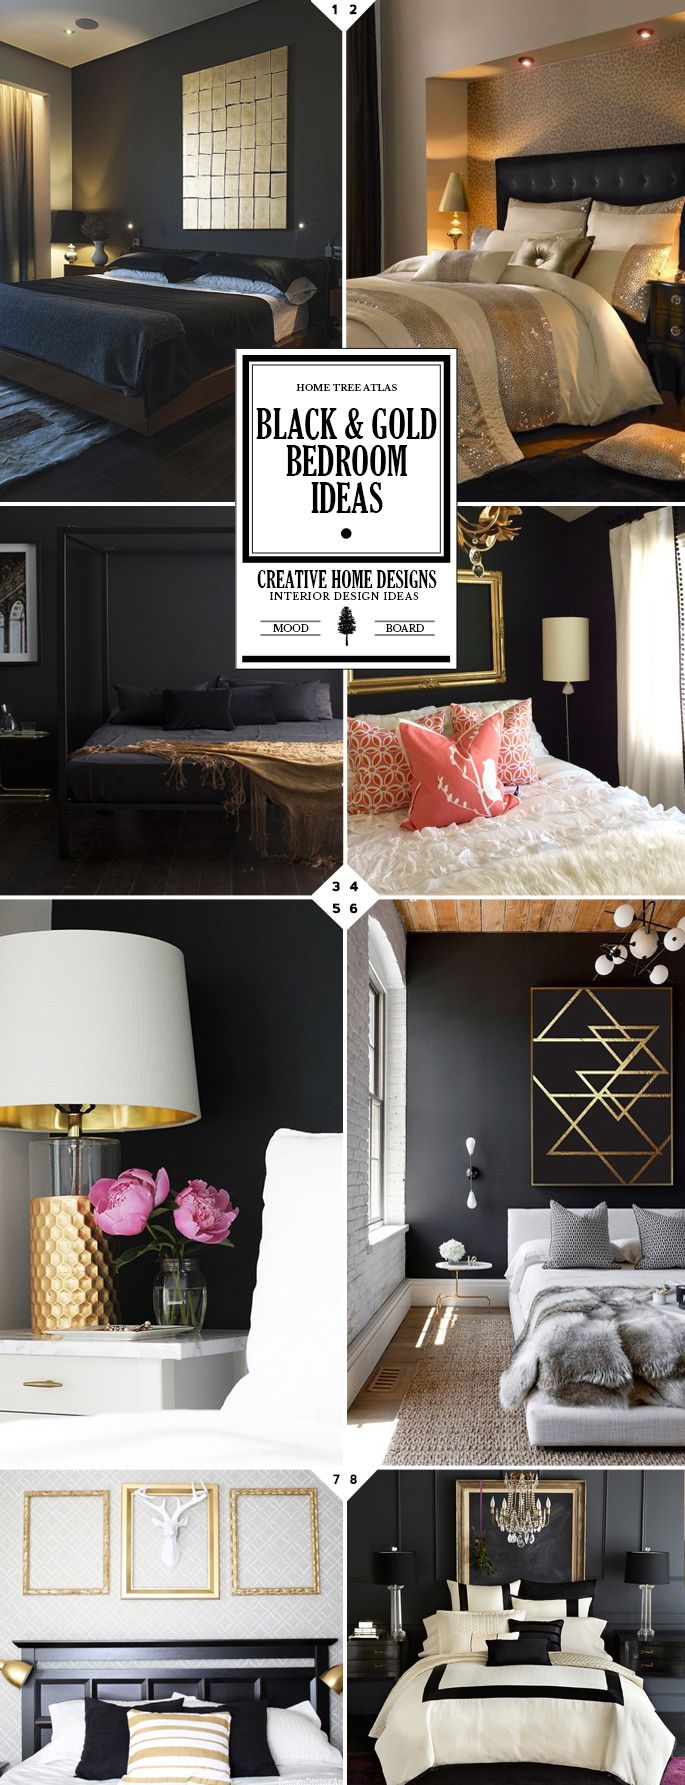 A Touch Of Luxury, Black And Gold Bedroom Ideas